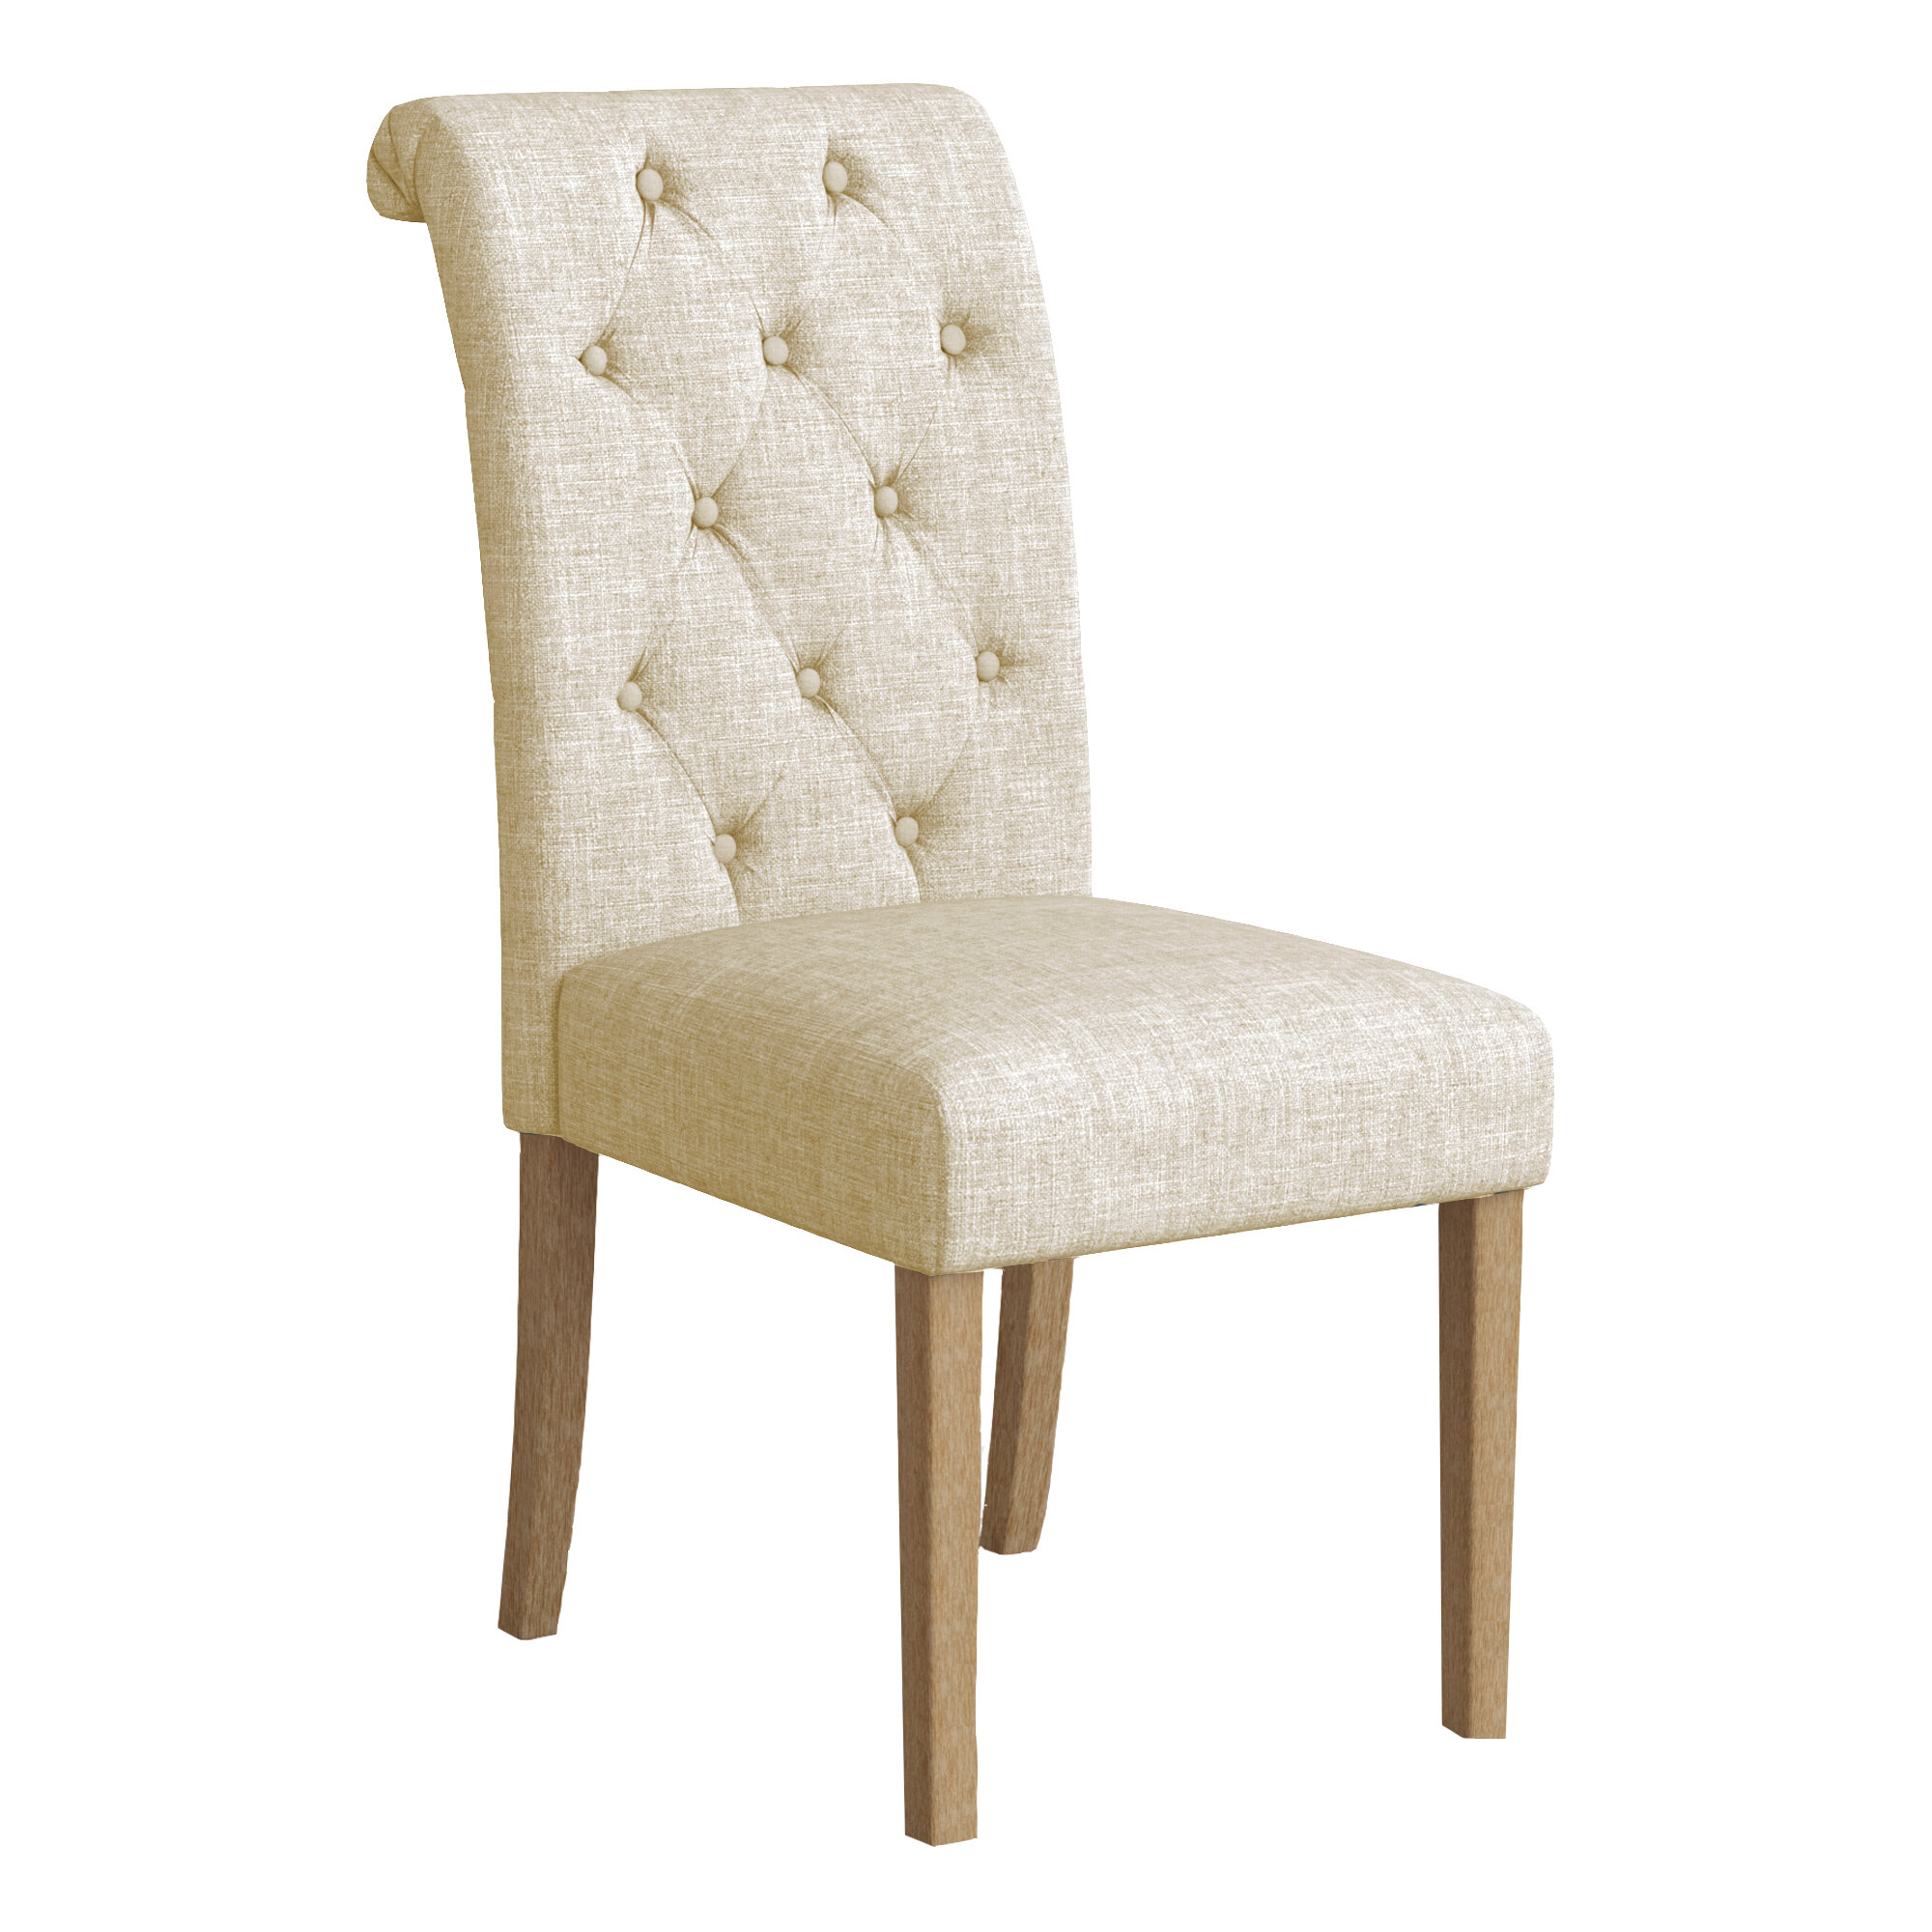 Mistana Charlotte Upholstered Dining Chair U0026 Reviews | Wayfair